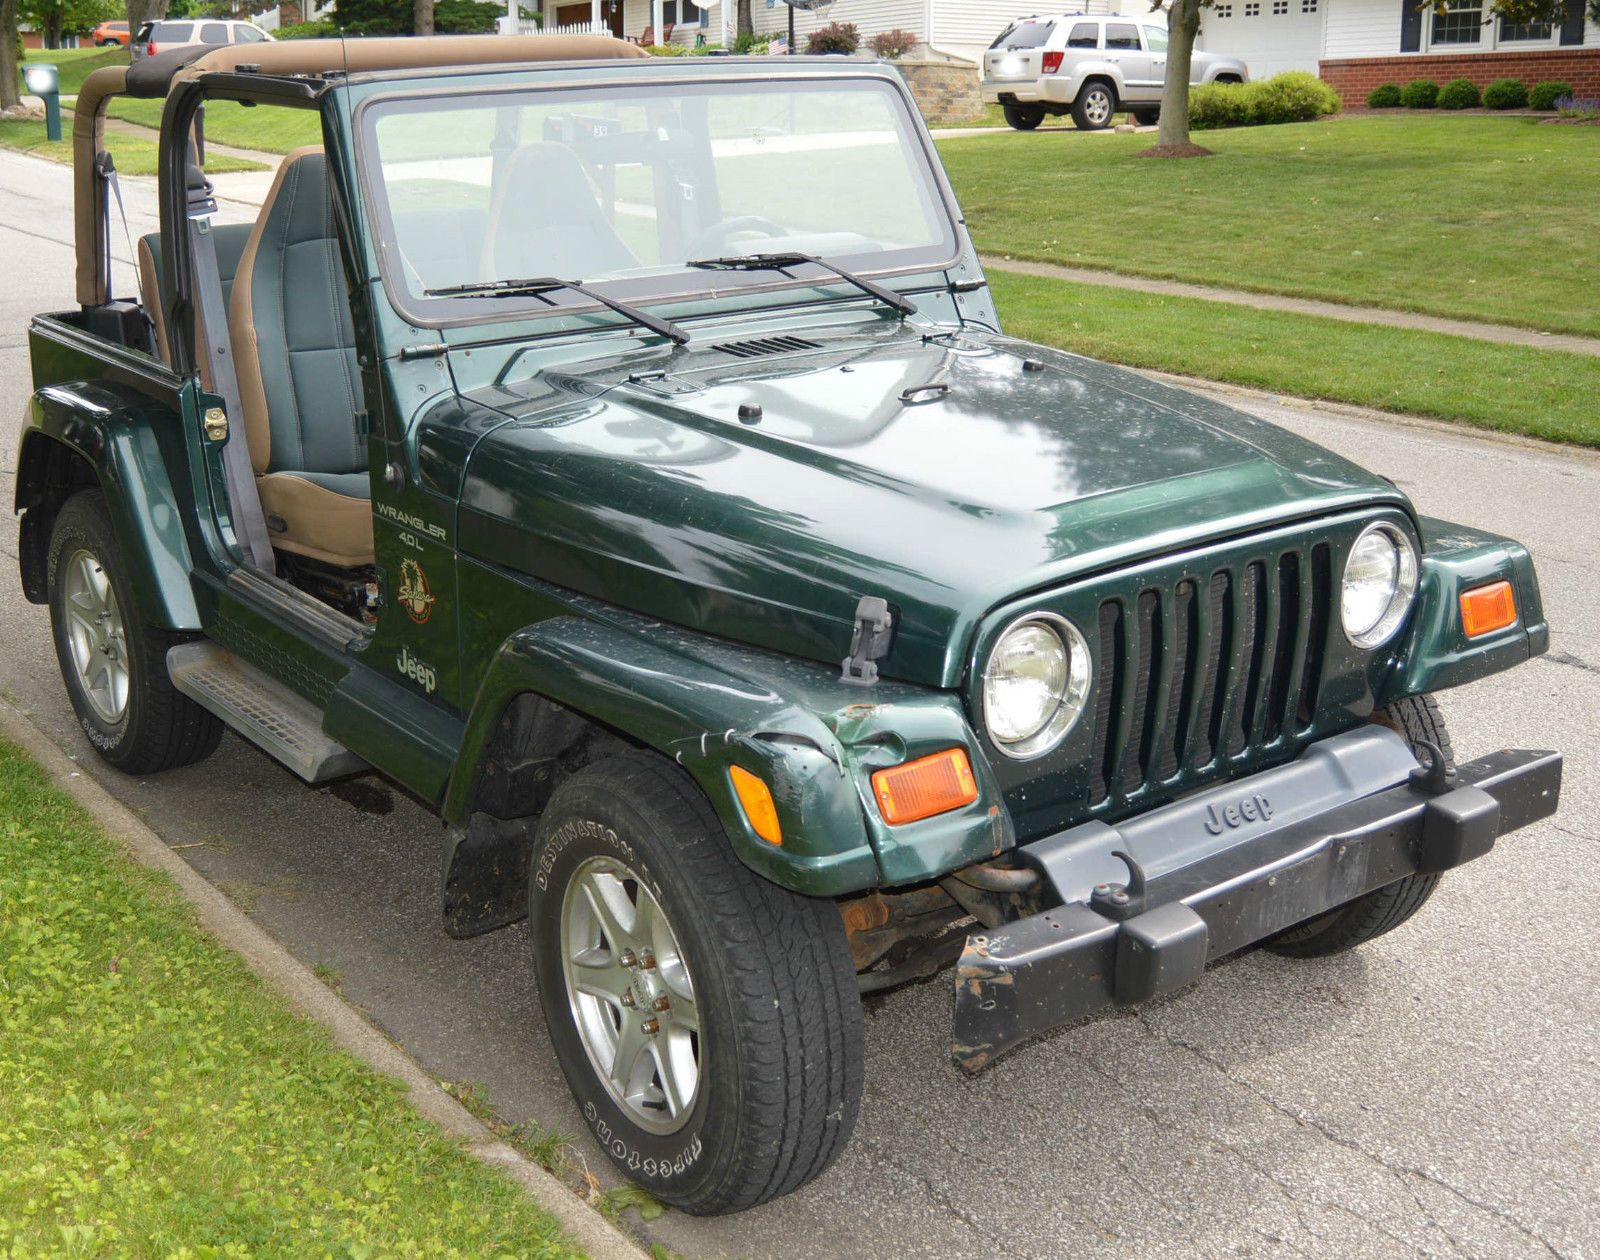 Car Brand Auctioned Jeep Wrangler Sahara 2001 Car Model Jeep